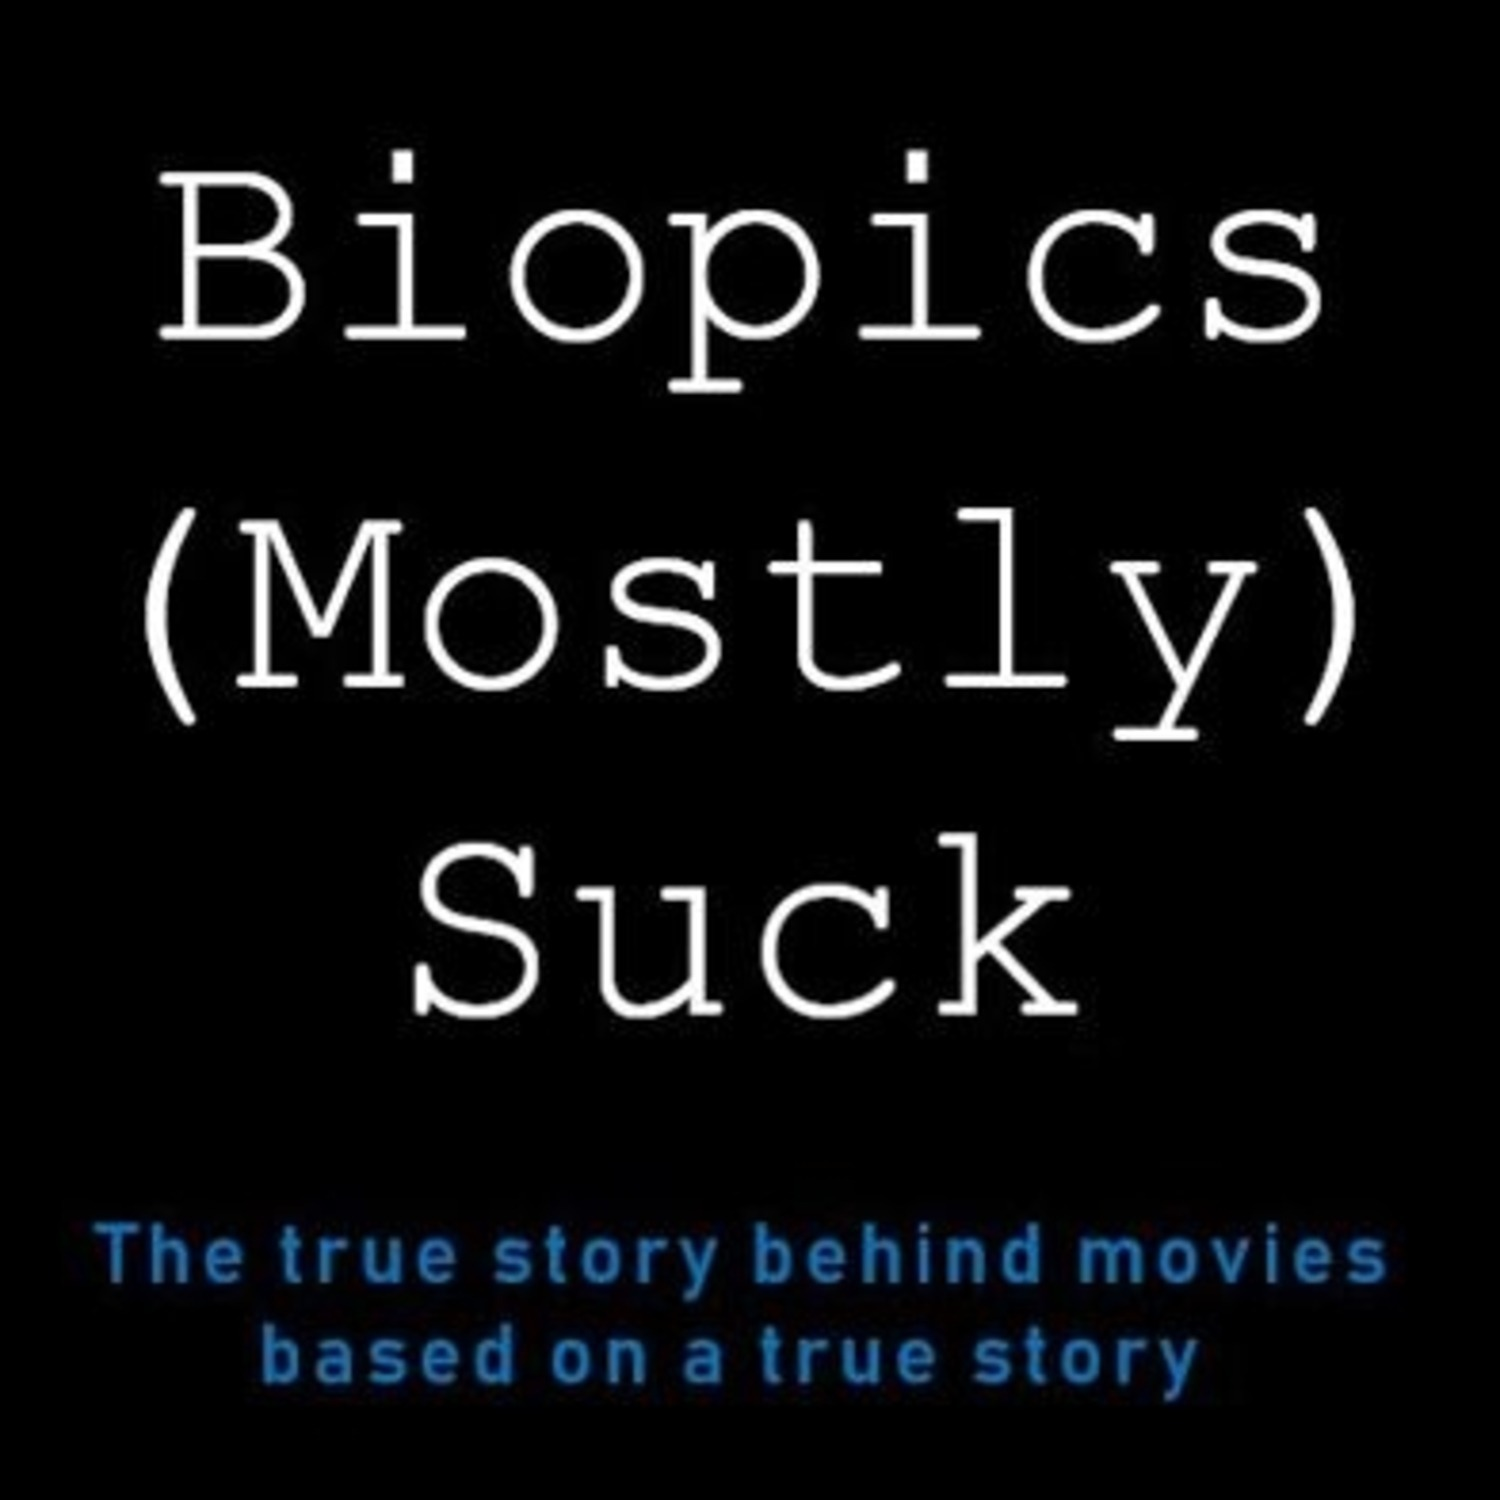 Biopics (Mostly) Suck - Howl - Episode 16 - Part One